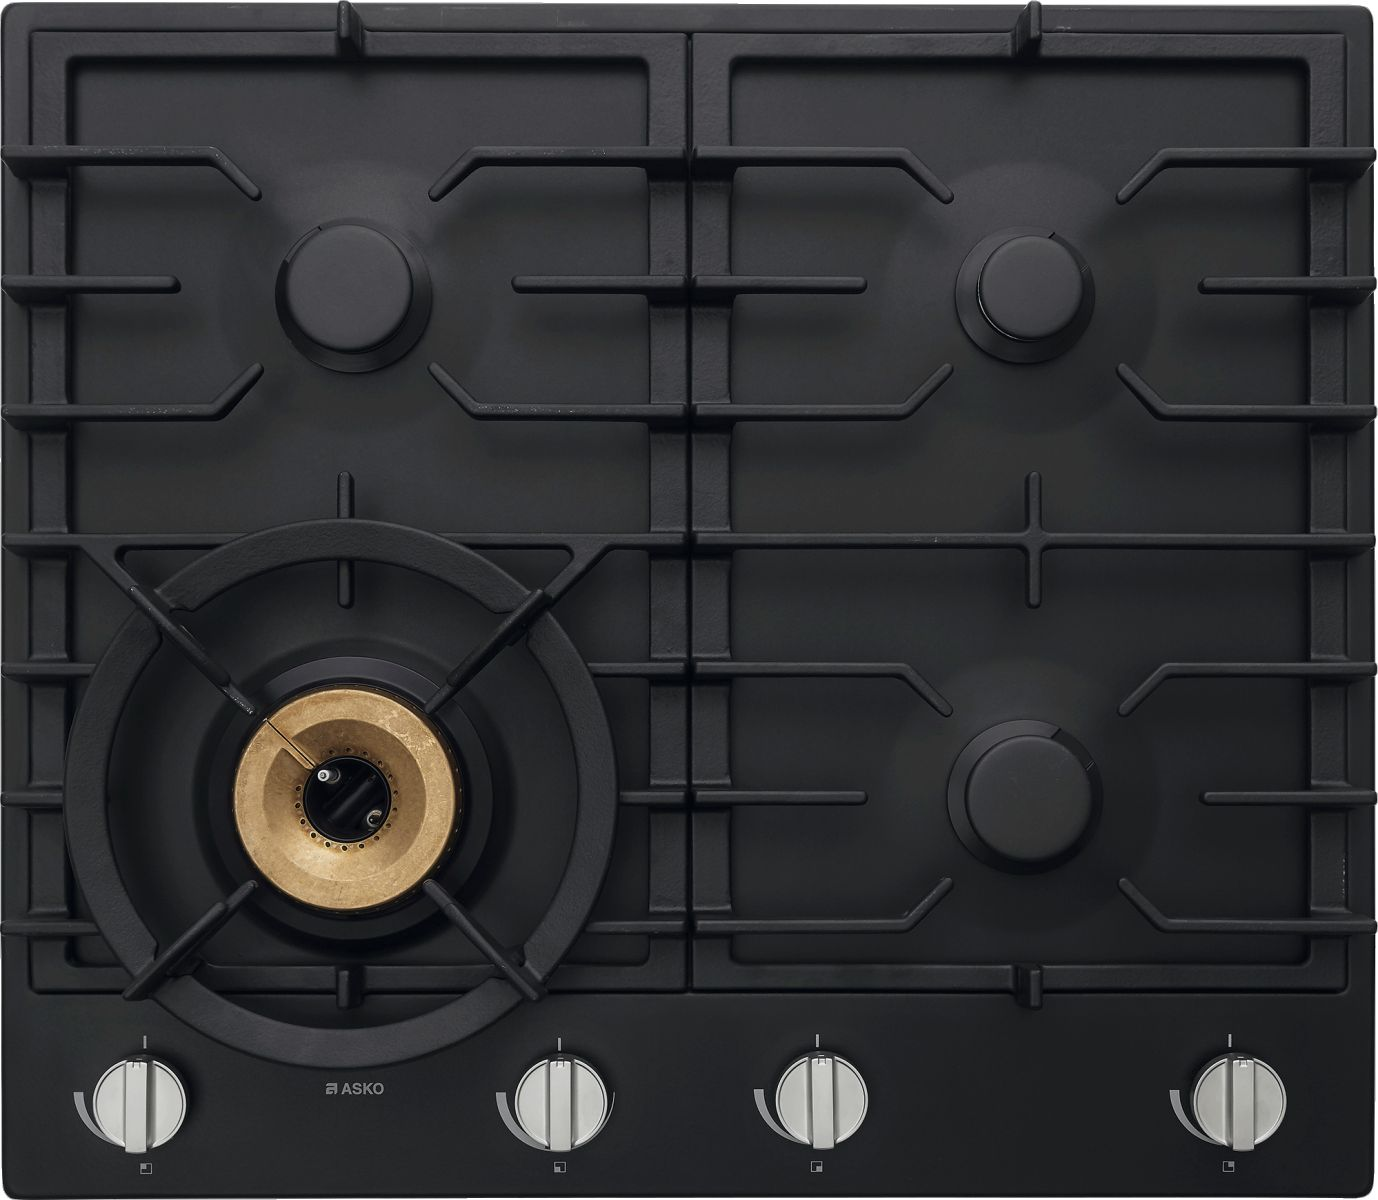 ASKO HG1666AD 60cm Gas Cooktop Anthracite